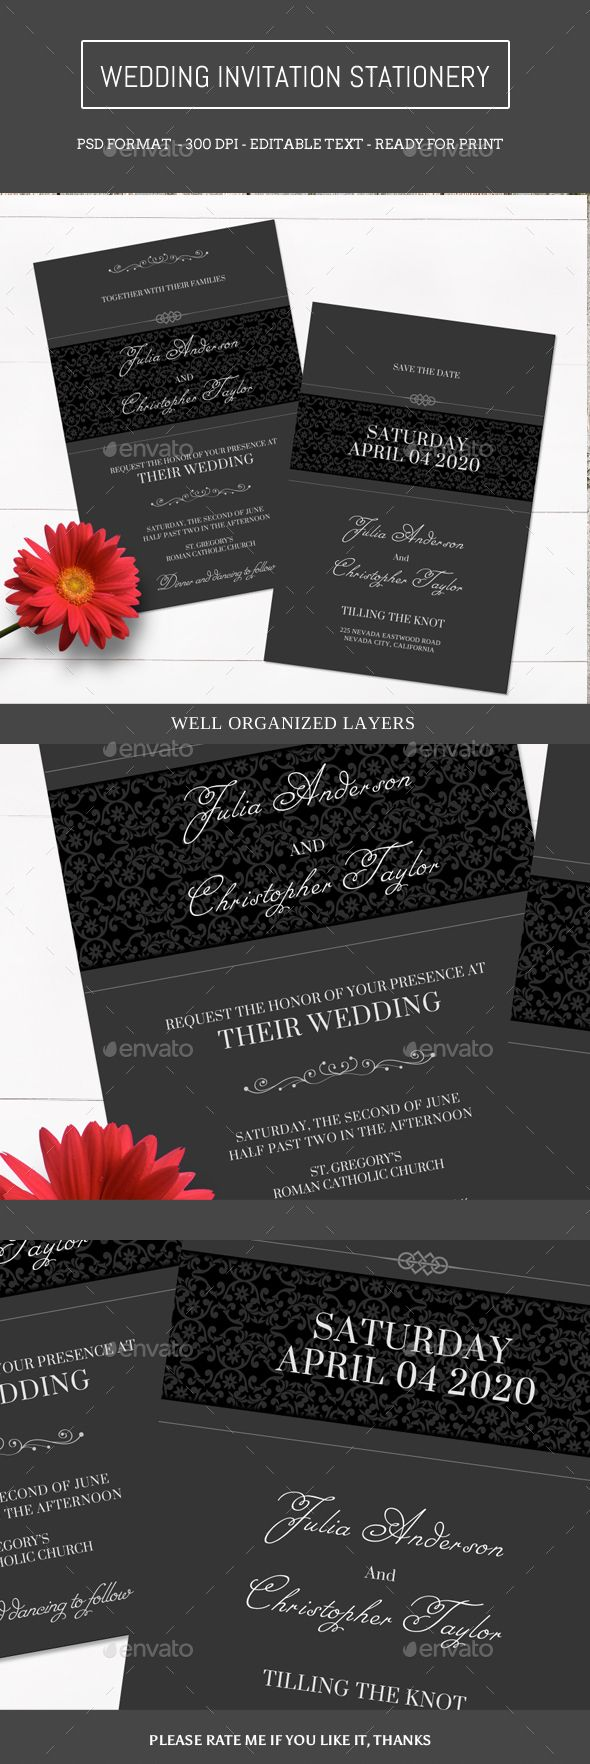 free wedding invitation psd%0A Wedding Invitation Card